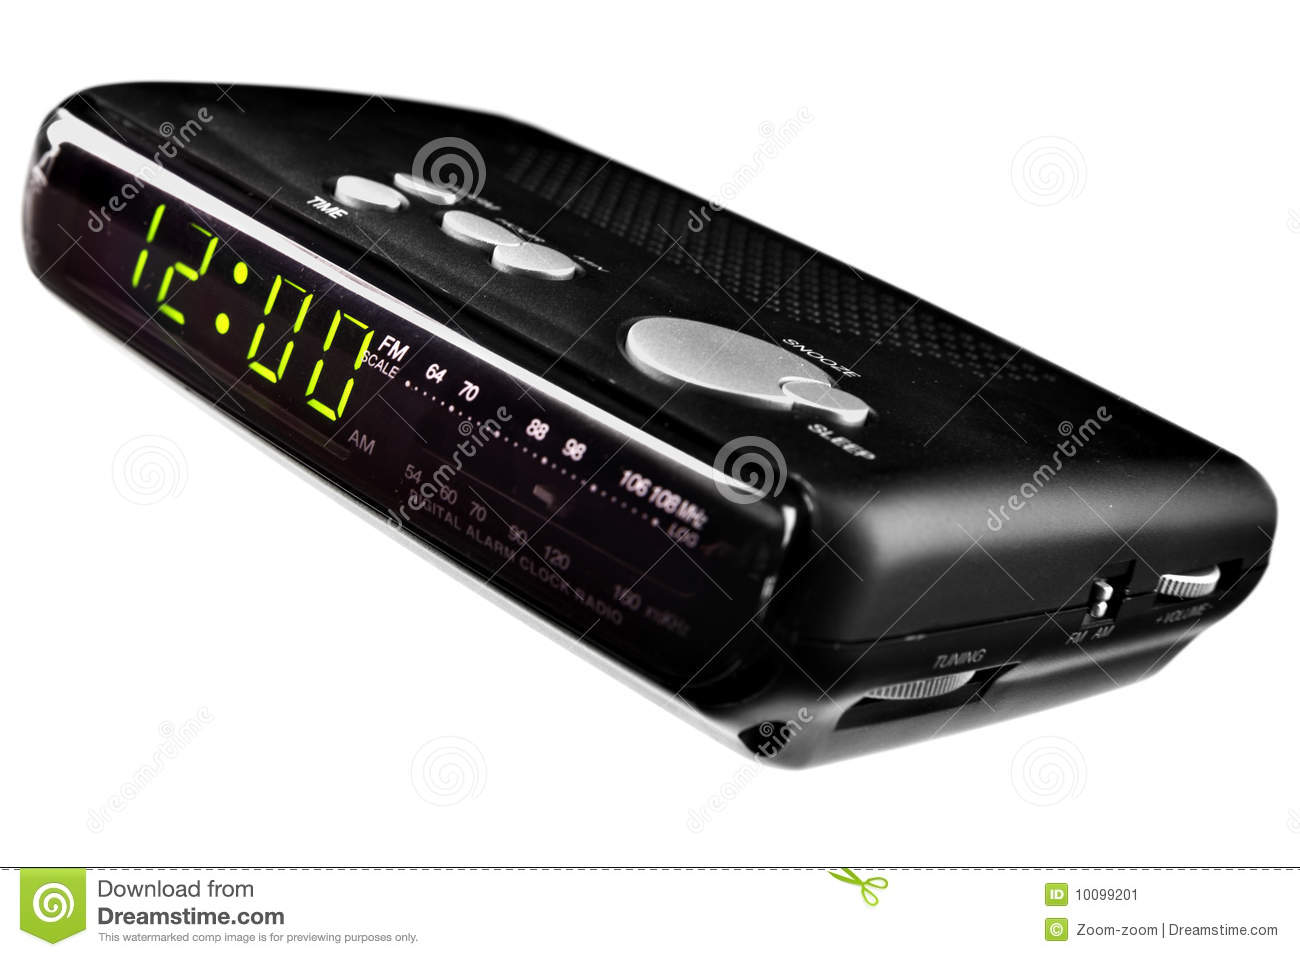 digital alarm clock radio stock image image 10099201. Black Bedroom Furniture Sets. Home Design Ideas